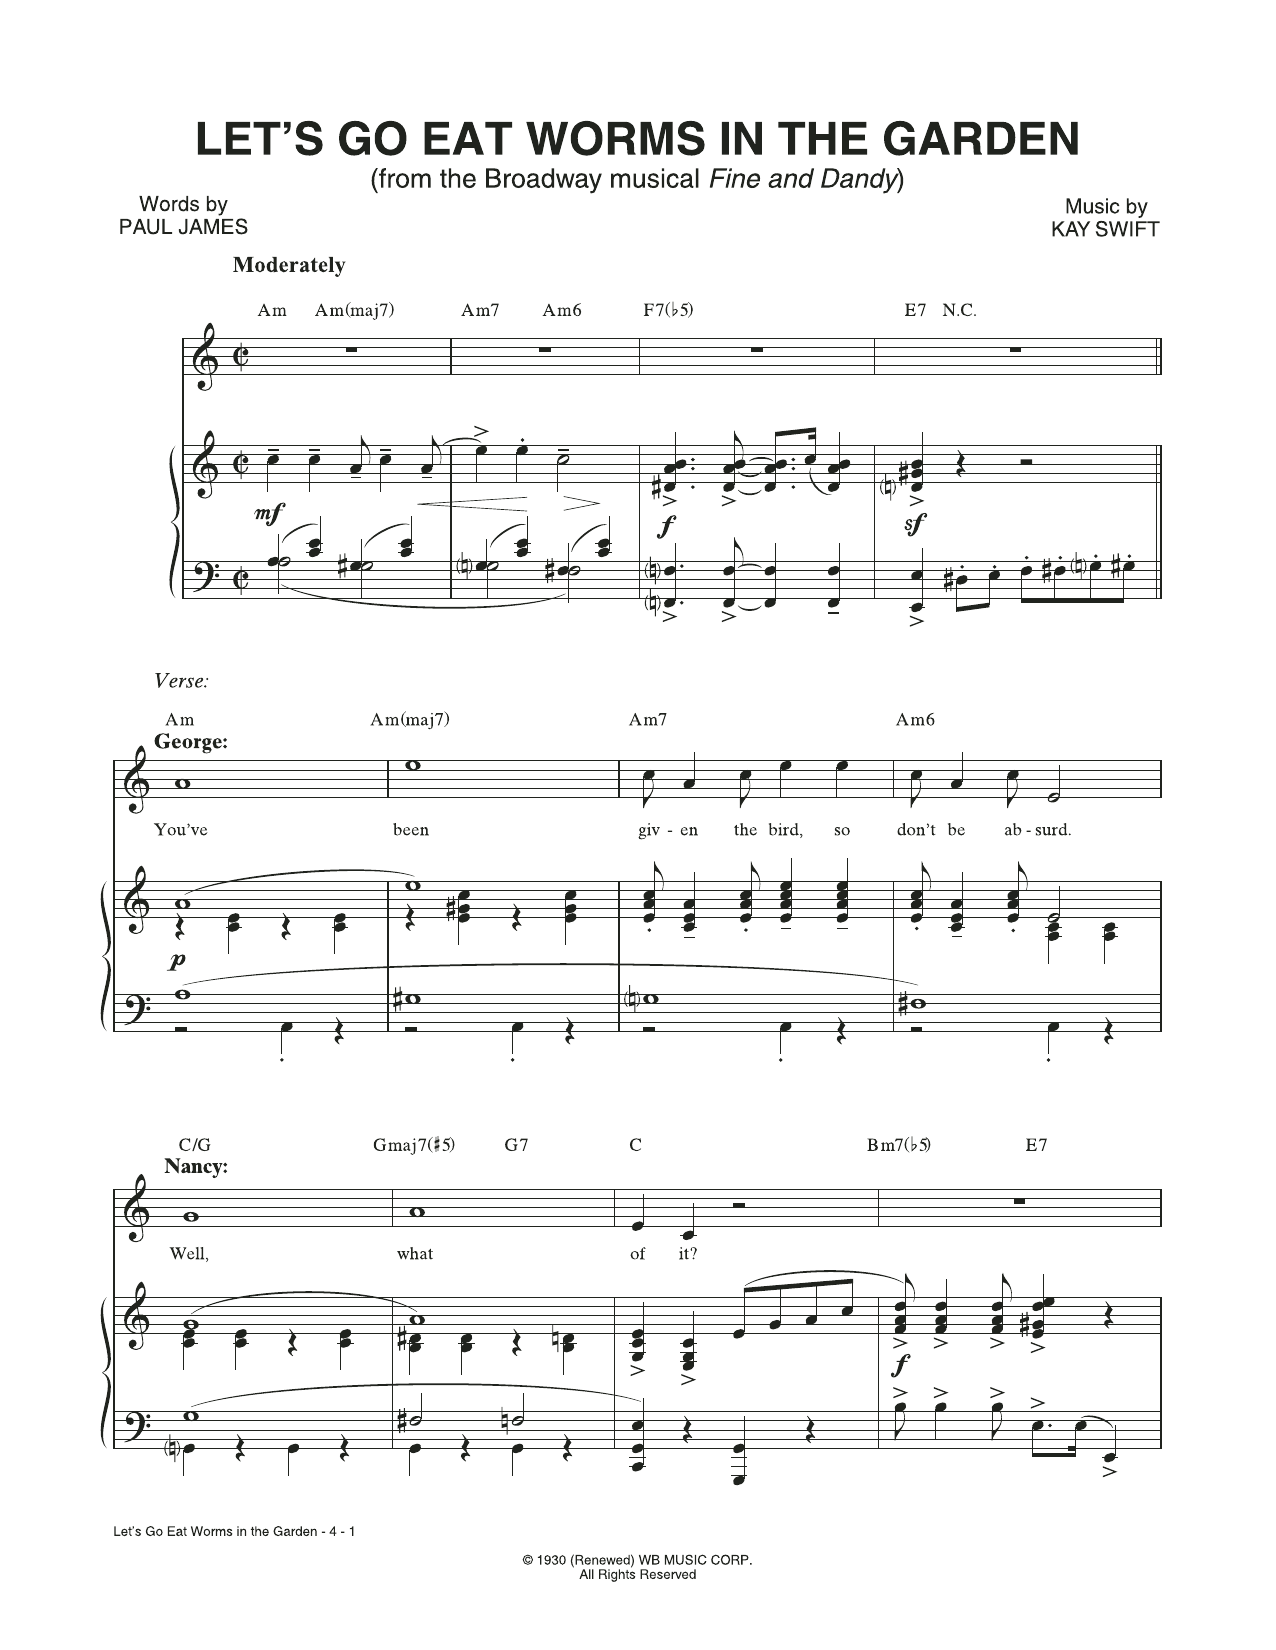 Kay Swift & Paul James Let's Go Eat Worms In The Garden (from the musical Fine and Dandy) sheet music notes and chords. Download Printable PDF.